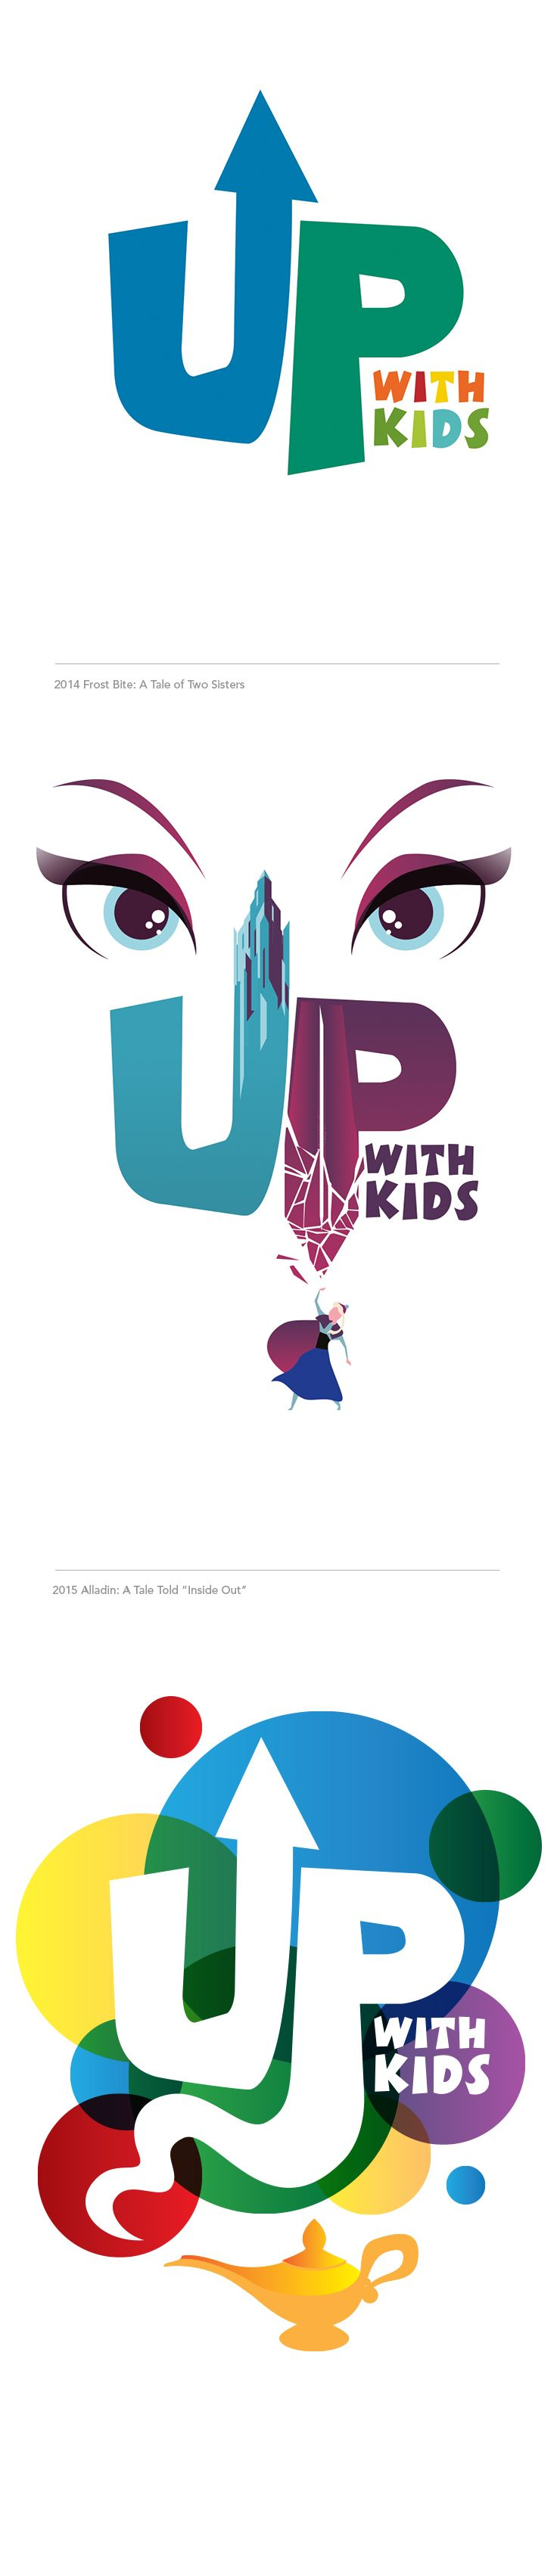 Up With Kids Visual Identity #epicmarketing #marketing #logo #identity #branding #graphicdesign #illustration #visualidentity